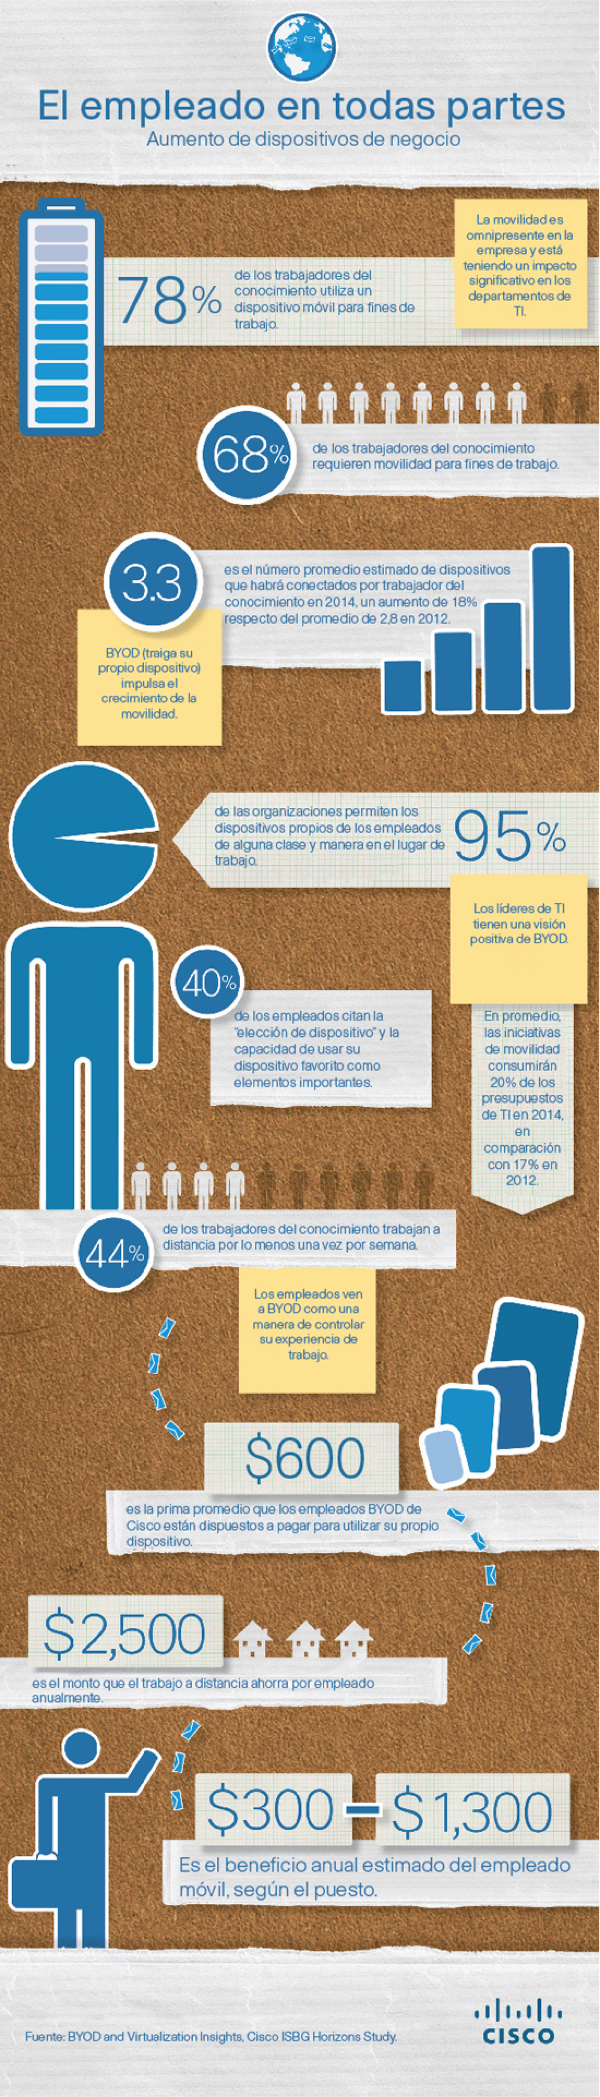 Sabes lo que son los empleados #BYOD #Infografia #AOBauditores #pymes #infographics